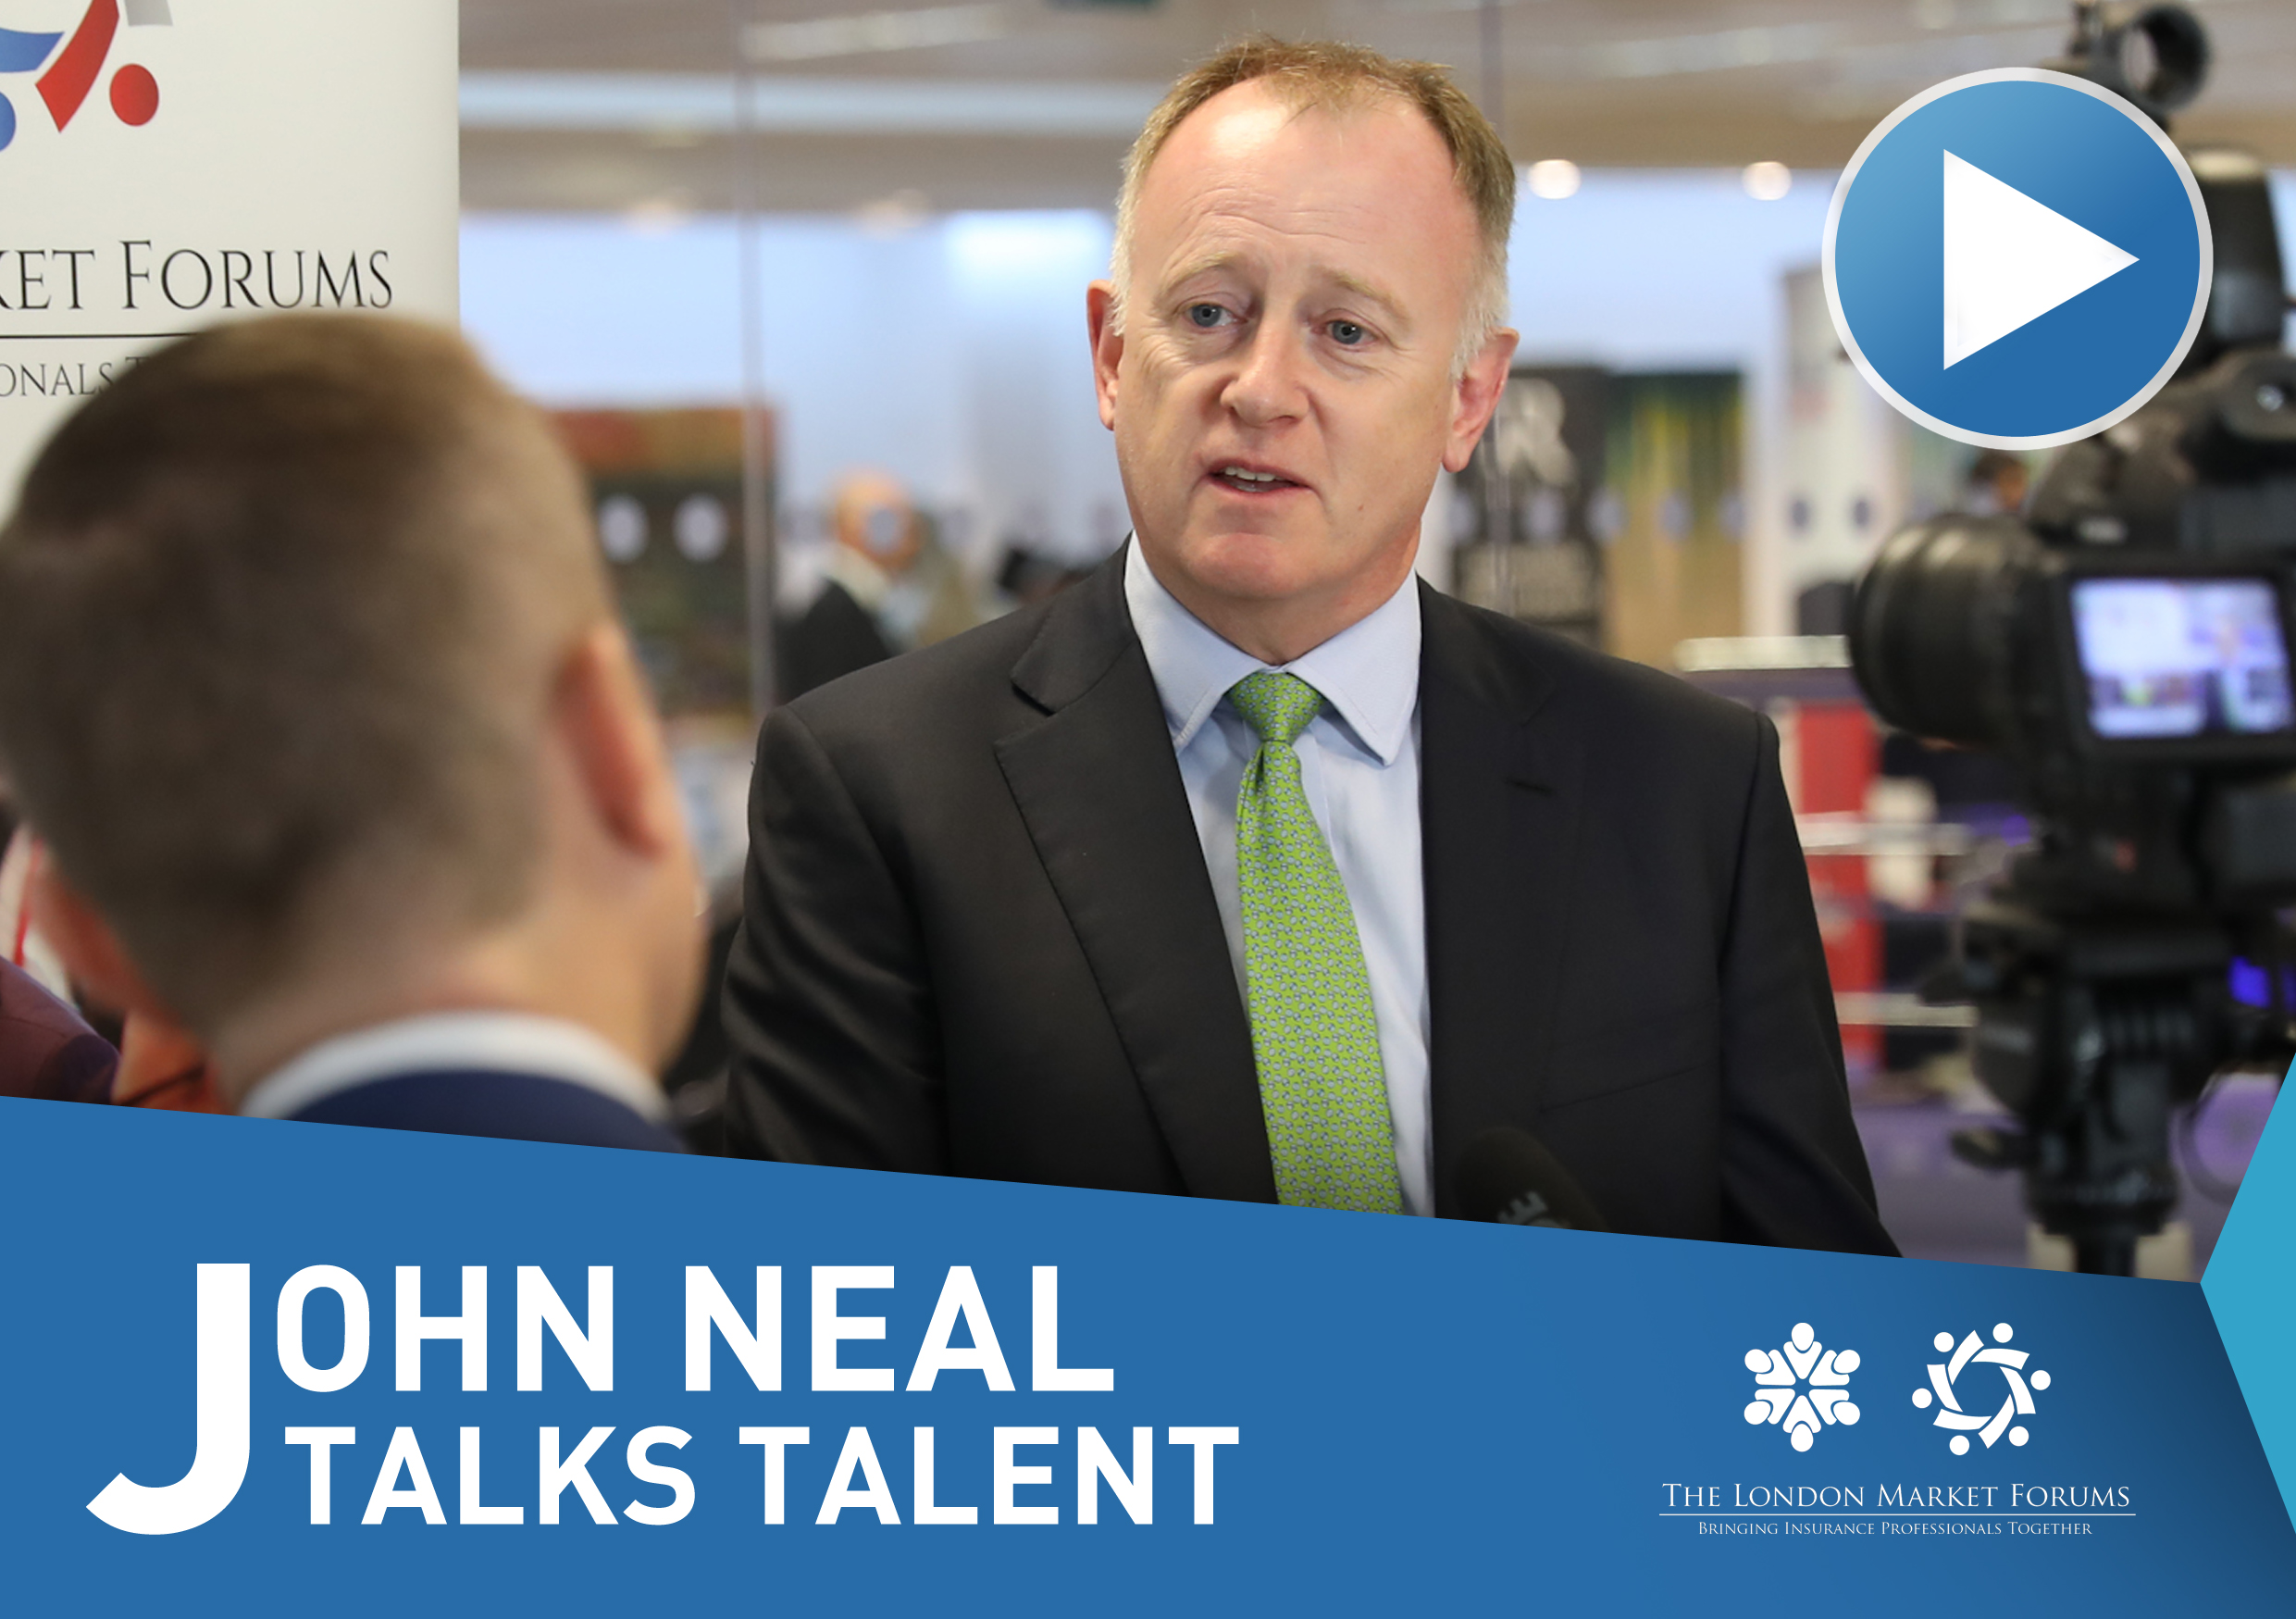 John Neal - Talks Talent